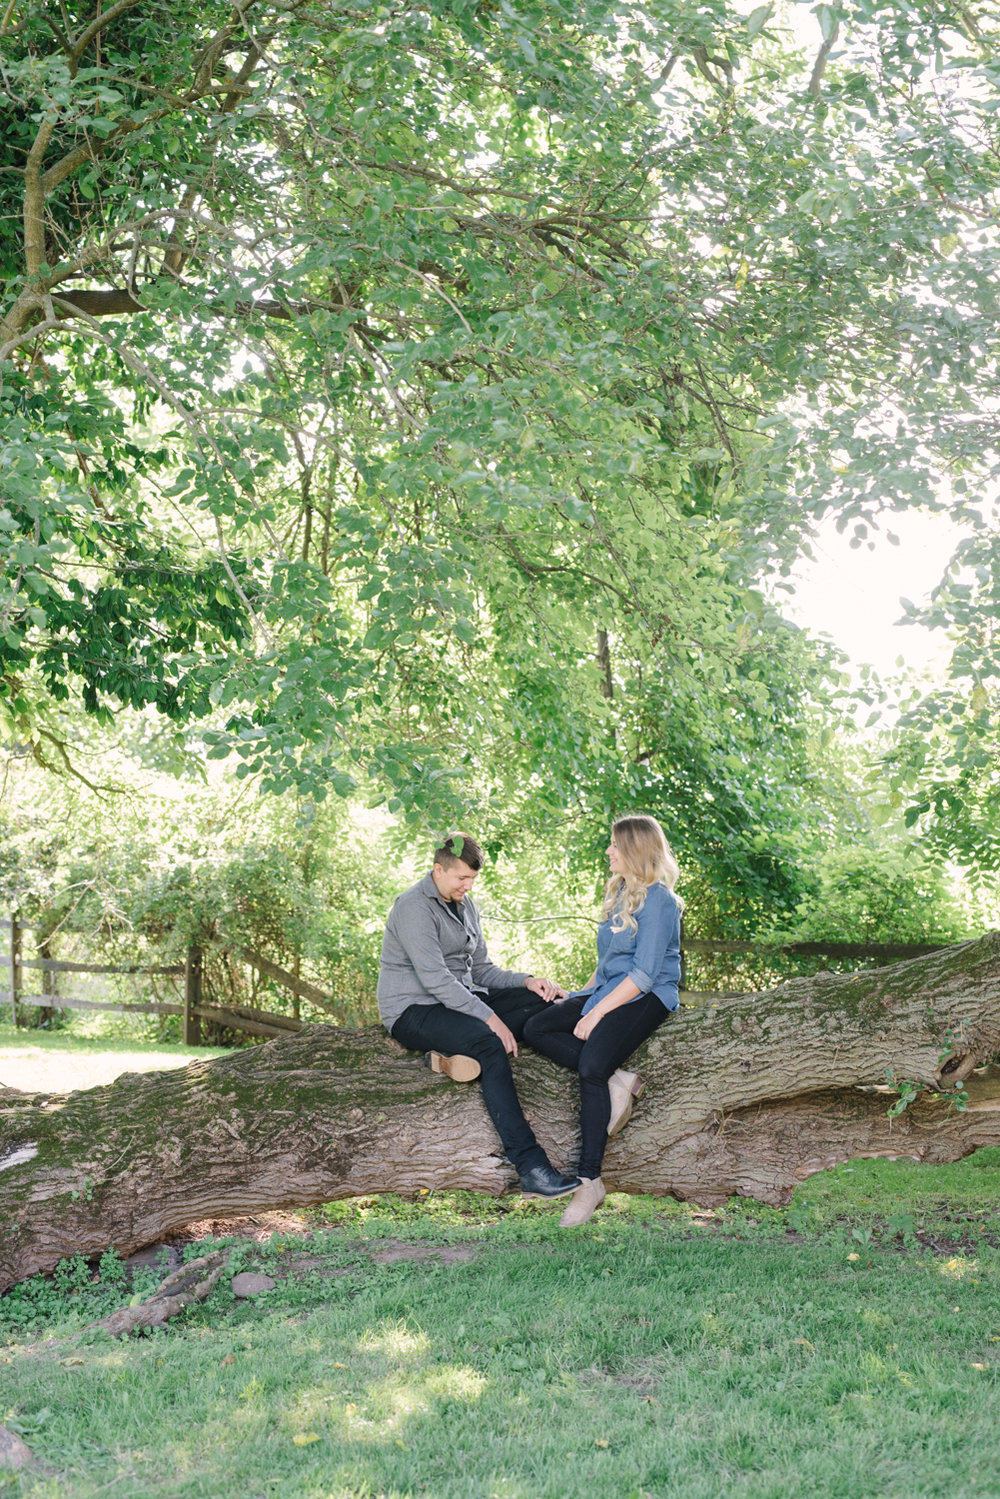 Updike Farmstead Engagement Session-Princeton New Jersey- Amanda+Pete- Olivia Christina Photo-16.jpg